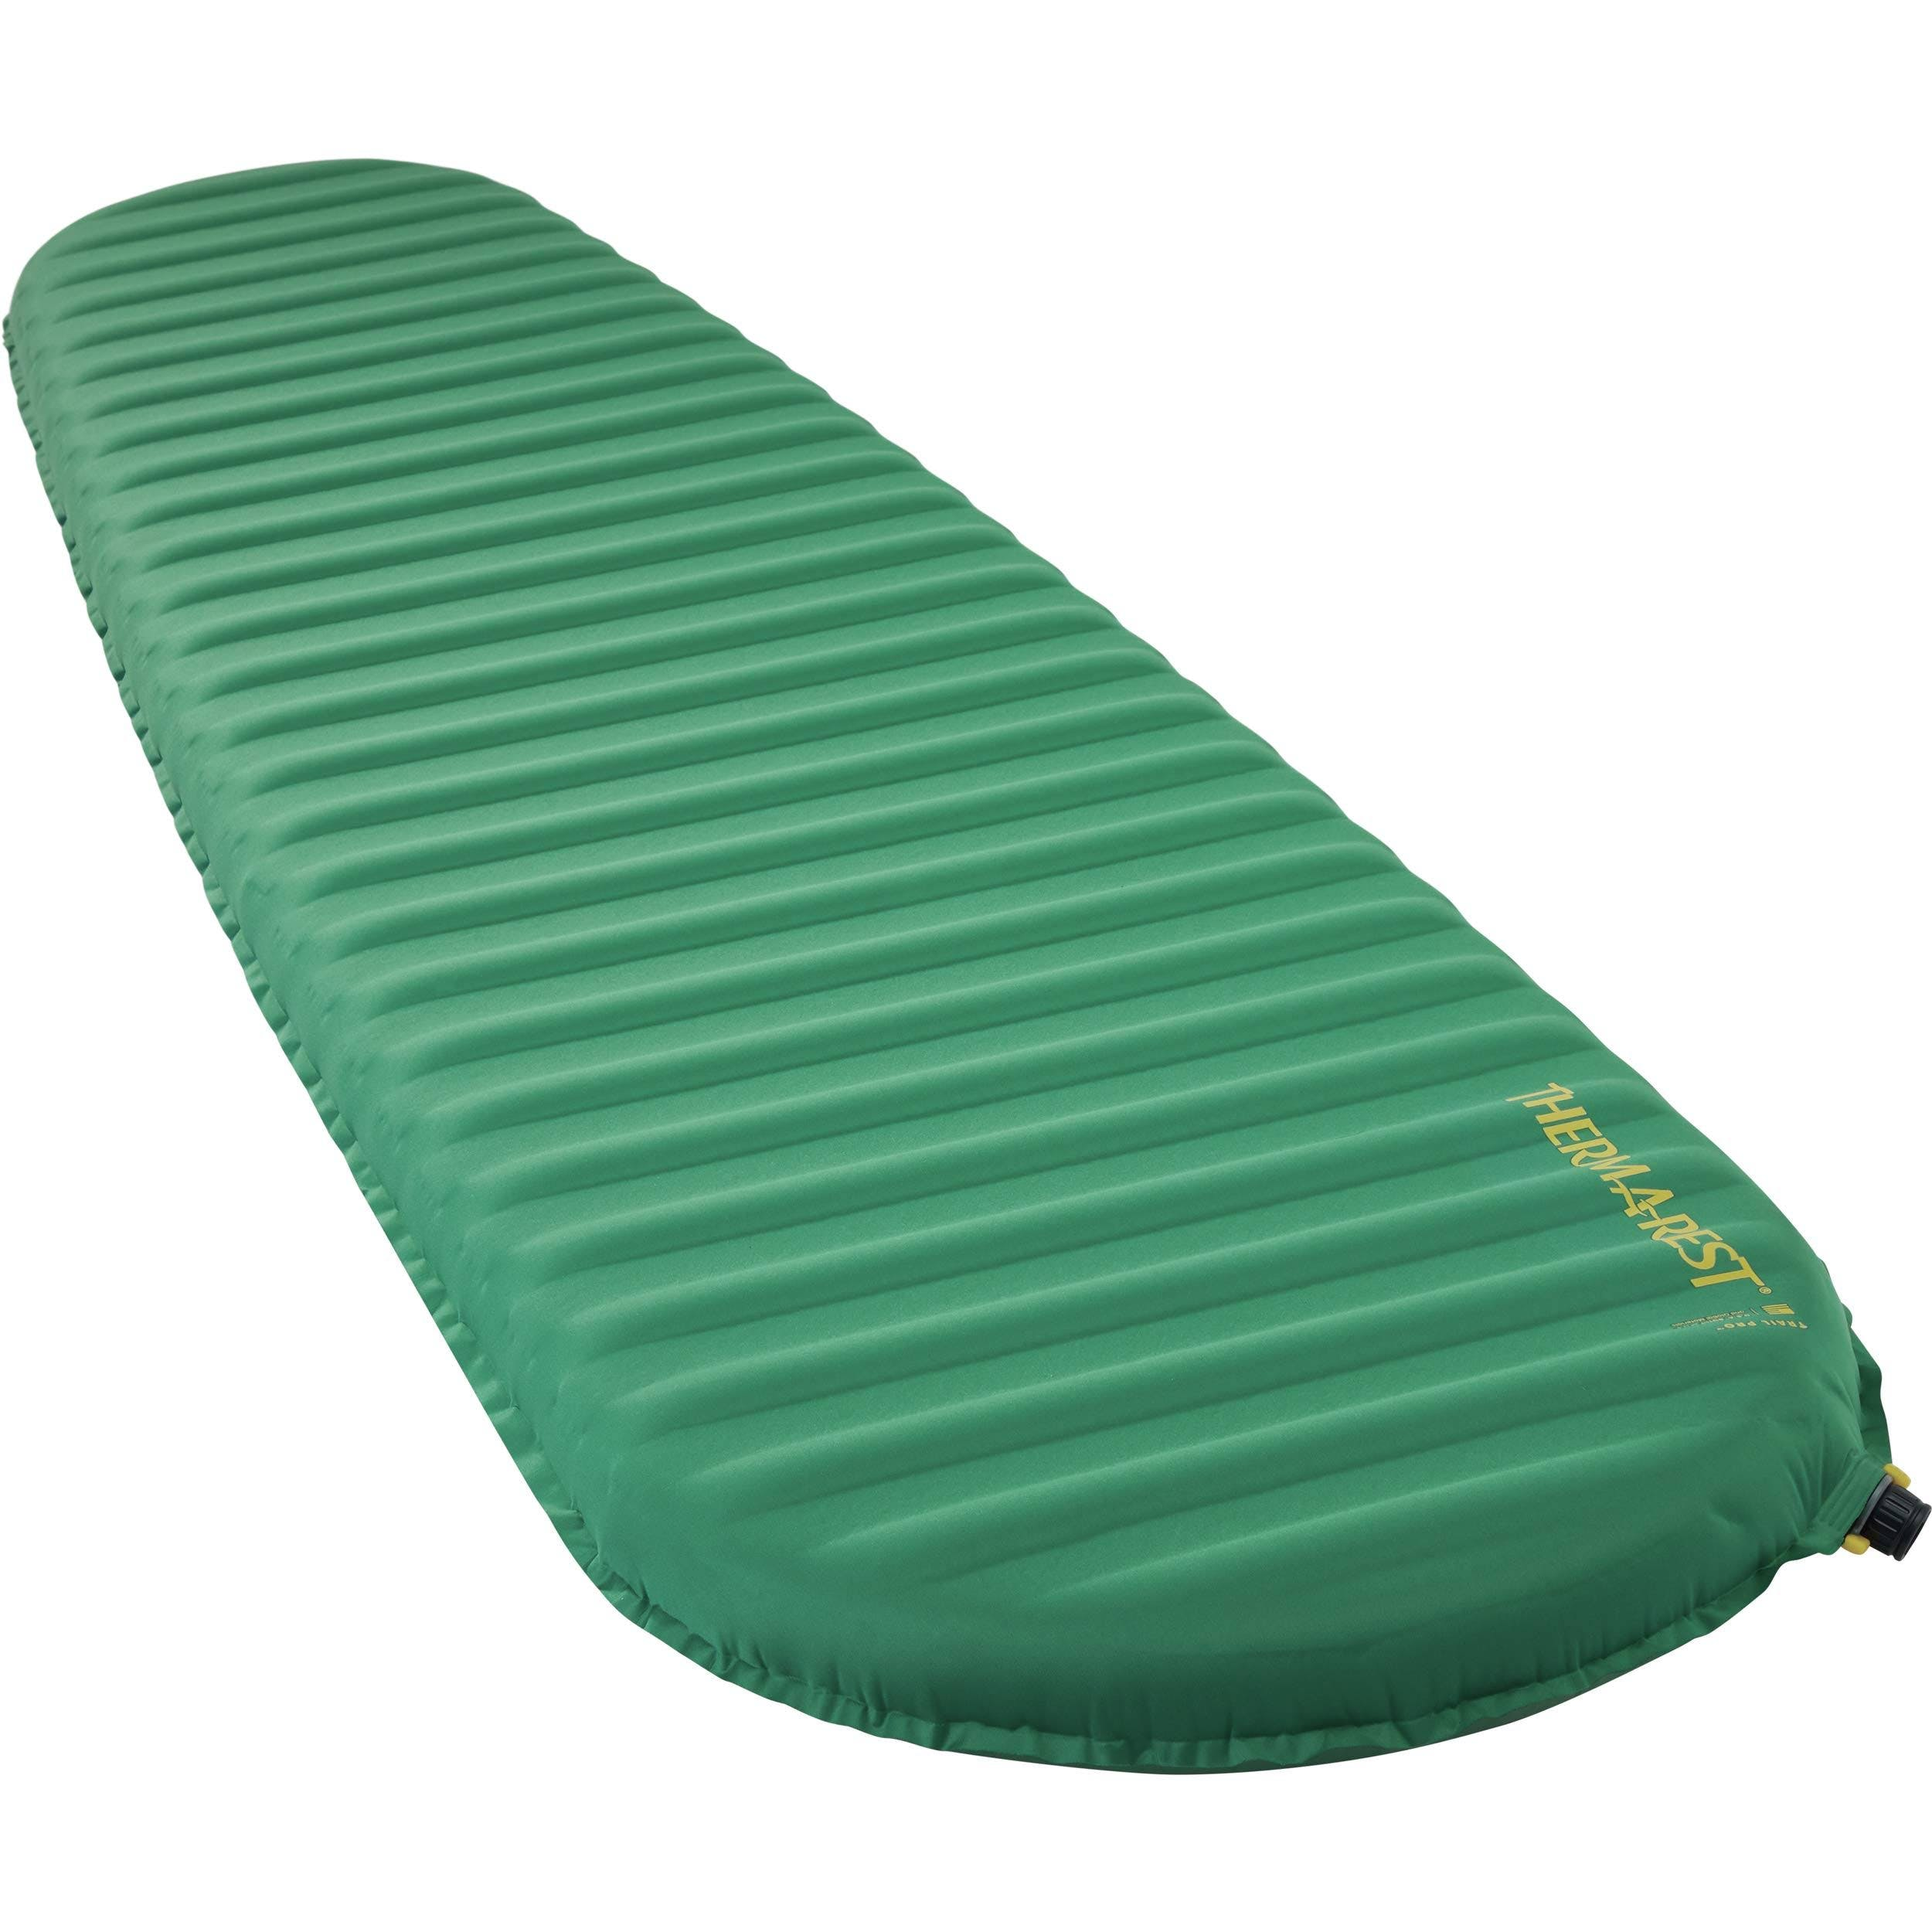 Therm-a-Rest Trail Pro Sleeping Pad Large